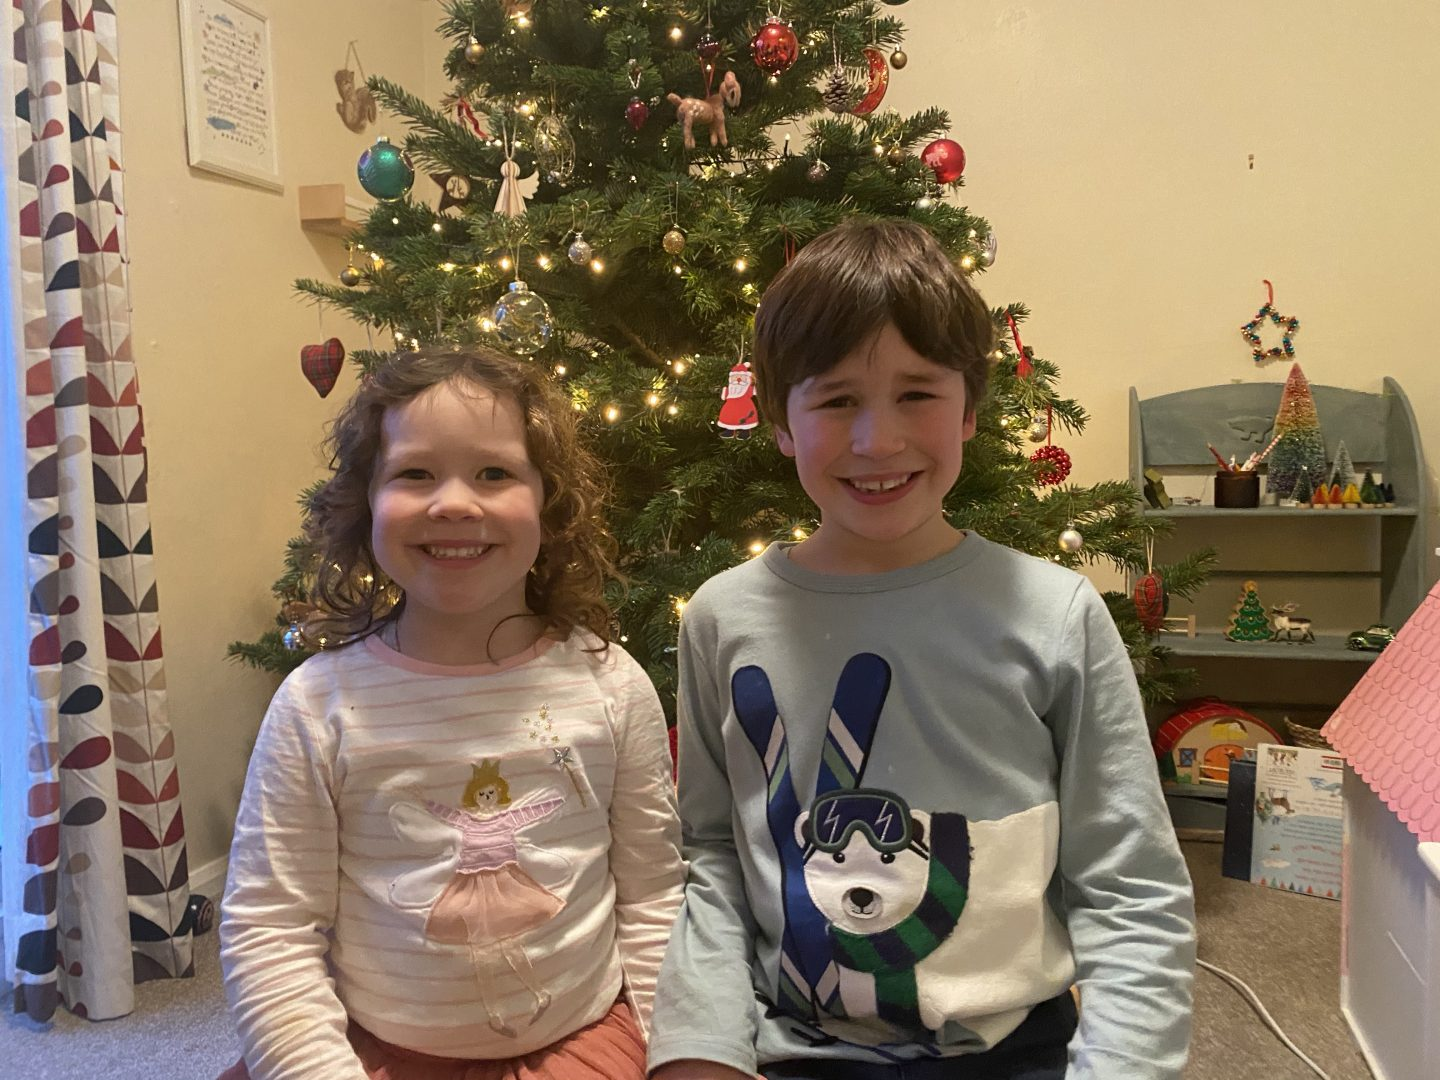 Two children say by the Christmas tree